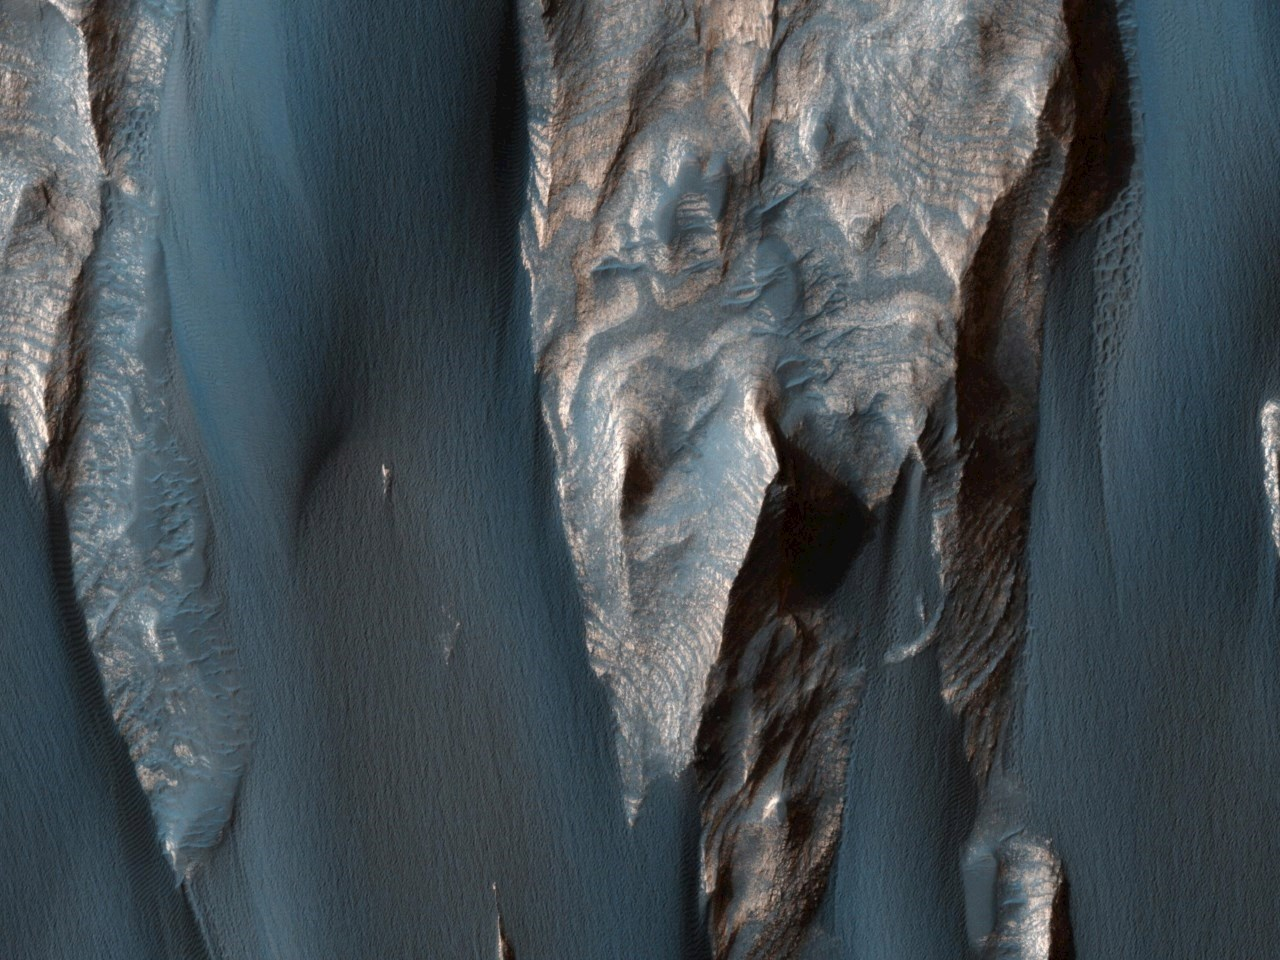 Windblown Sand in Ganges Chasma